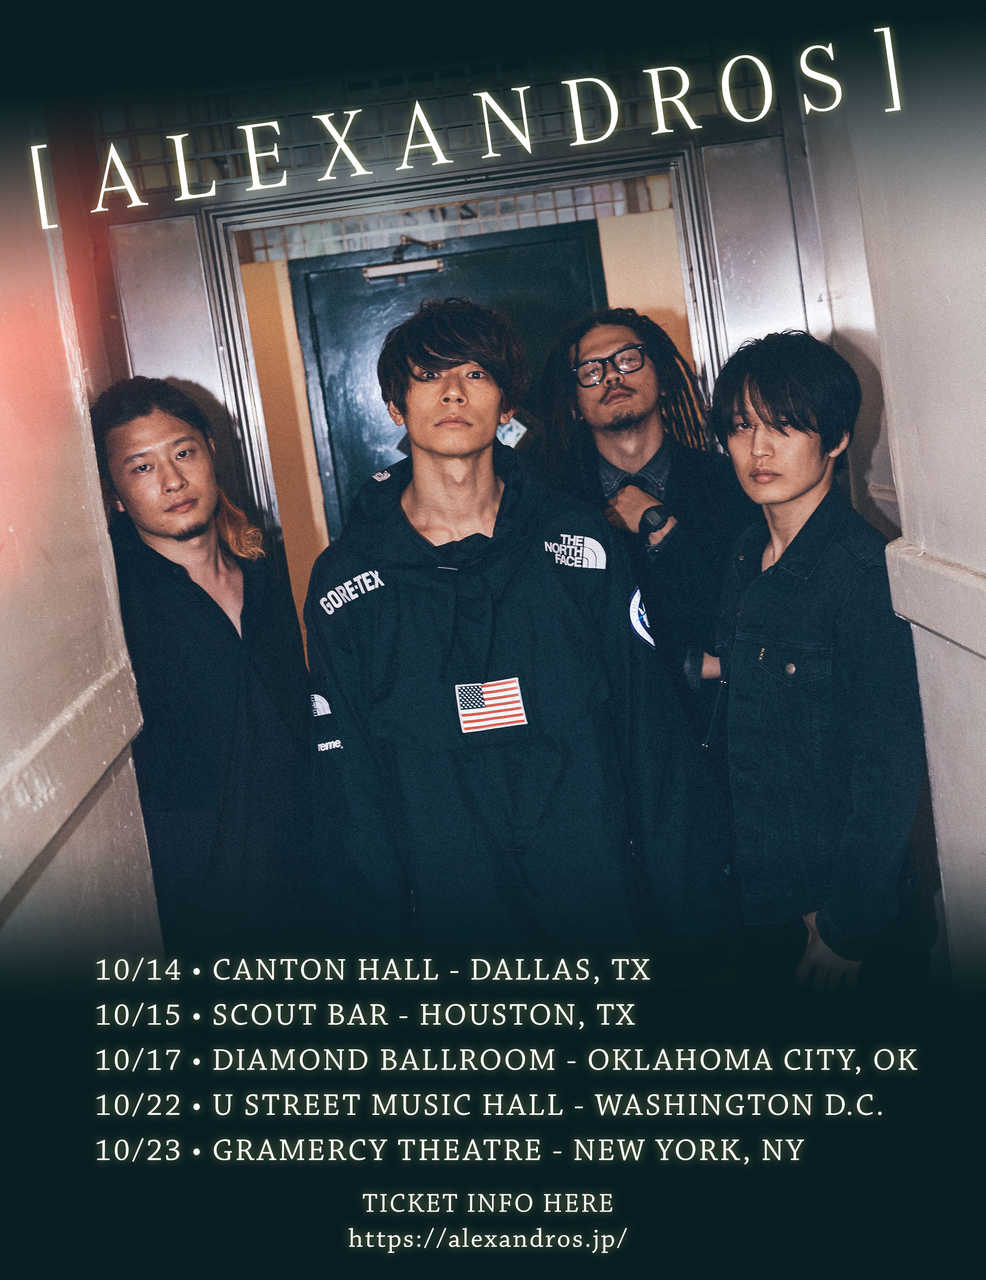 『[ALEXANDROS] USA TOUR 2018』